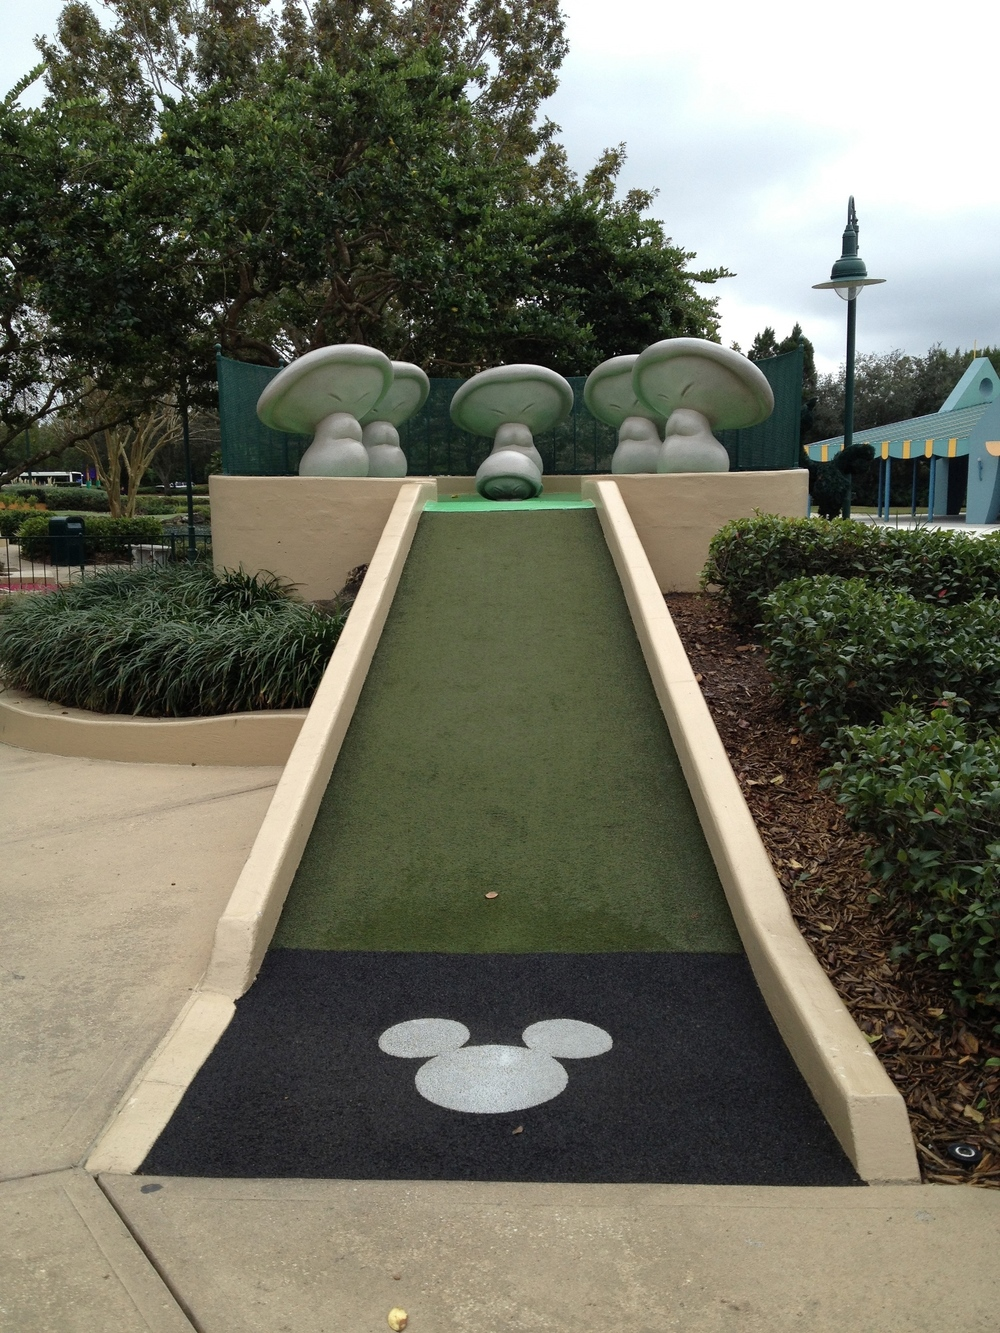 Fantasia Gardens Mini-Golf at Disney World.